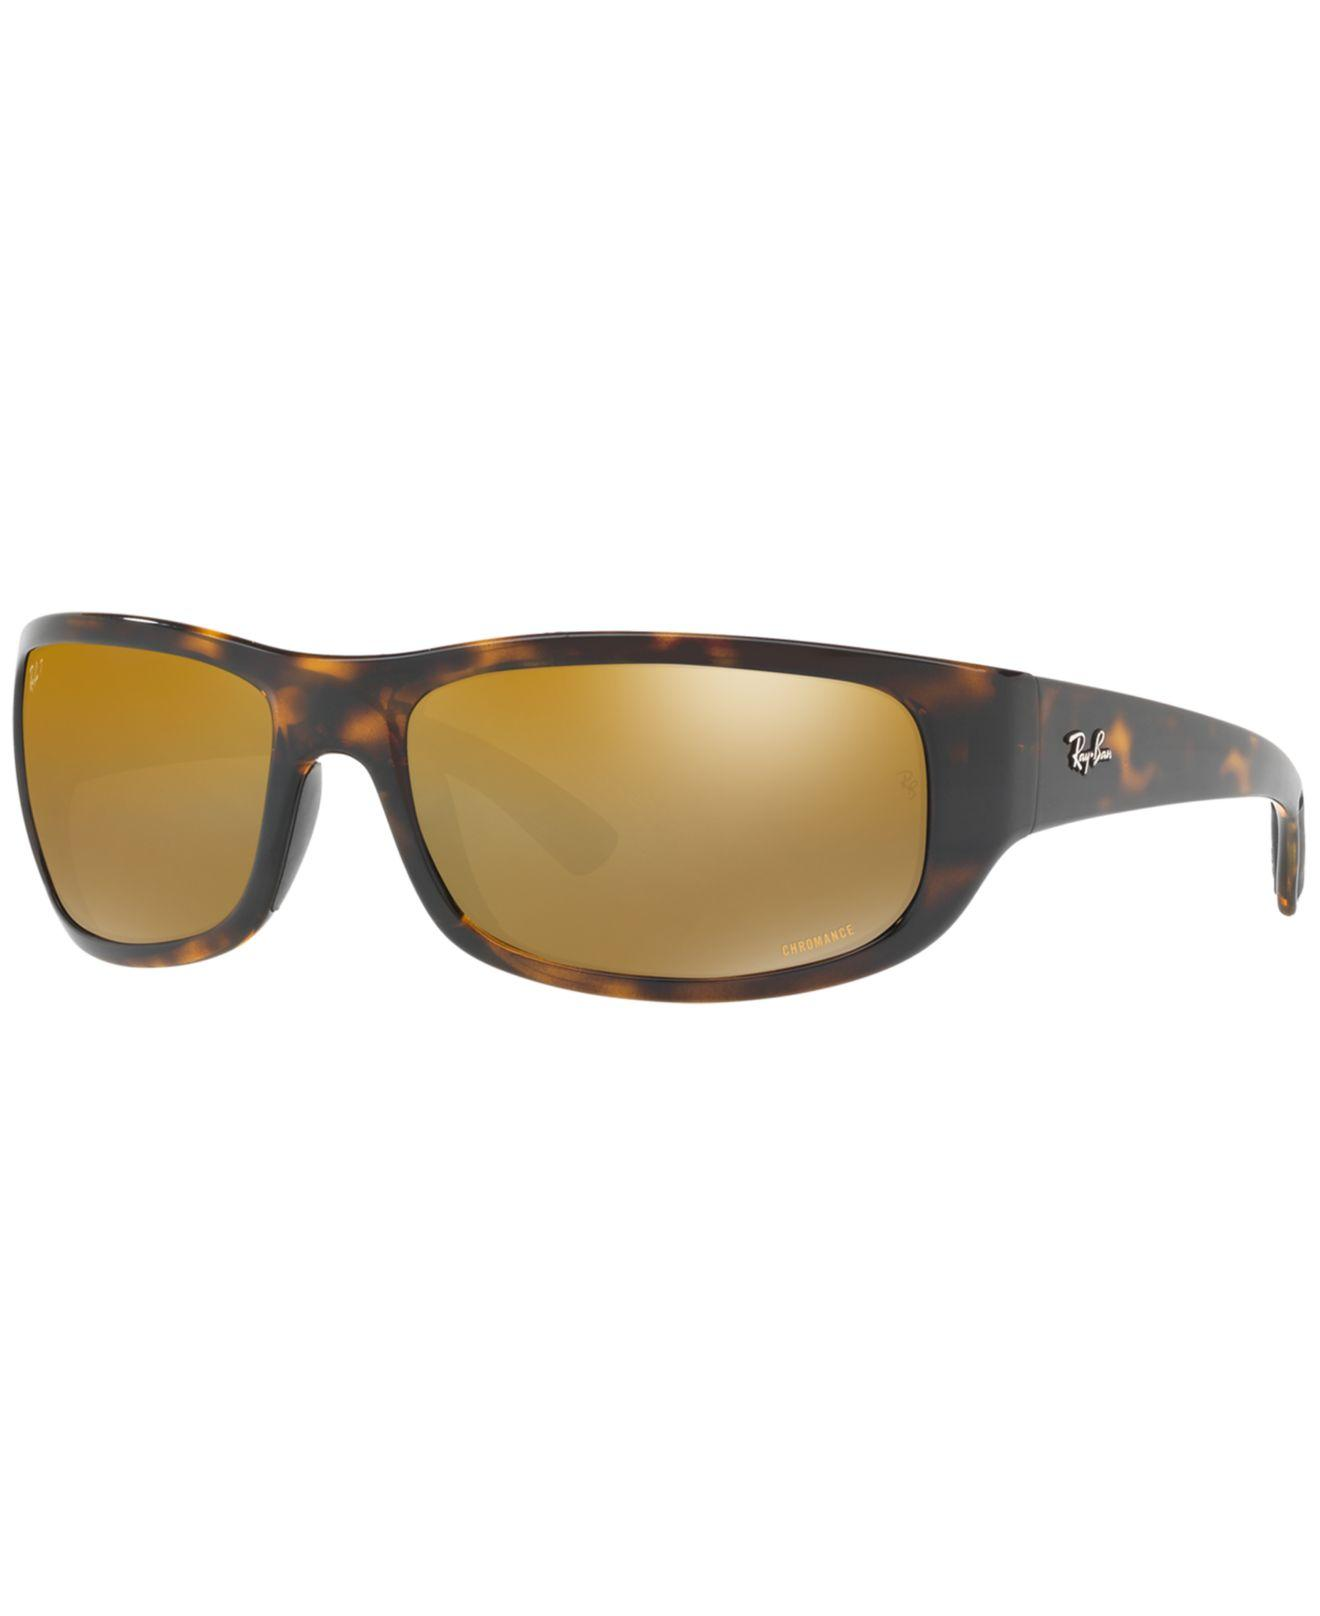 0e690bac7d Ray-Ban. Men s Brown Polarized Sunglasses